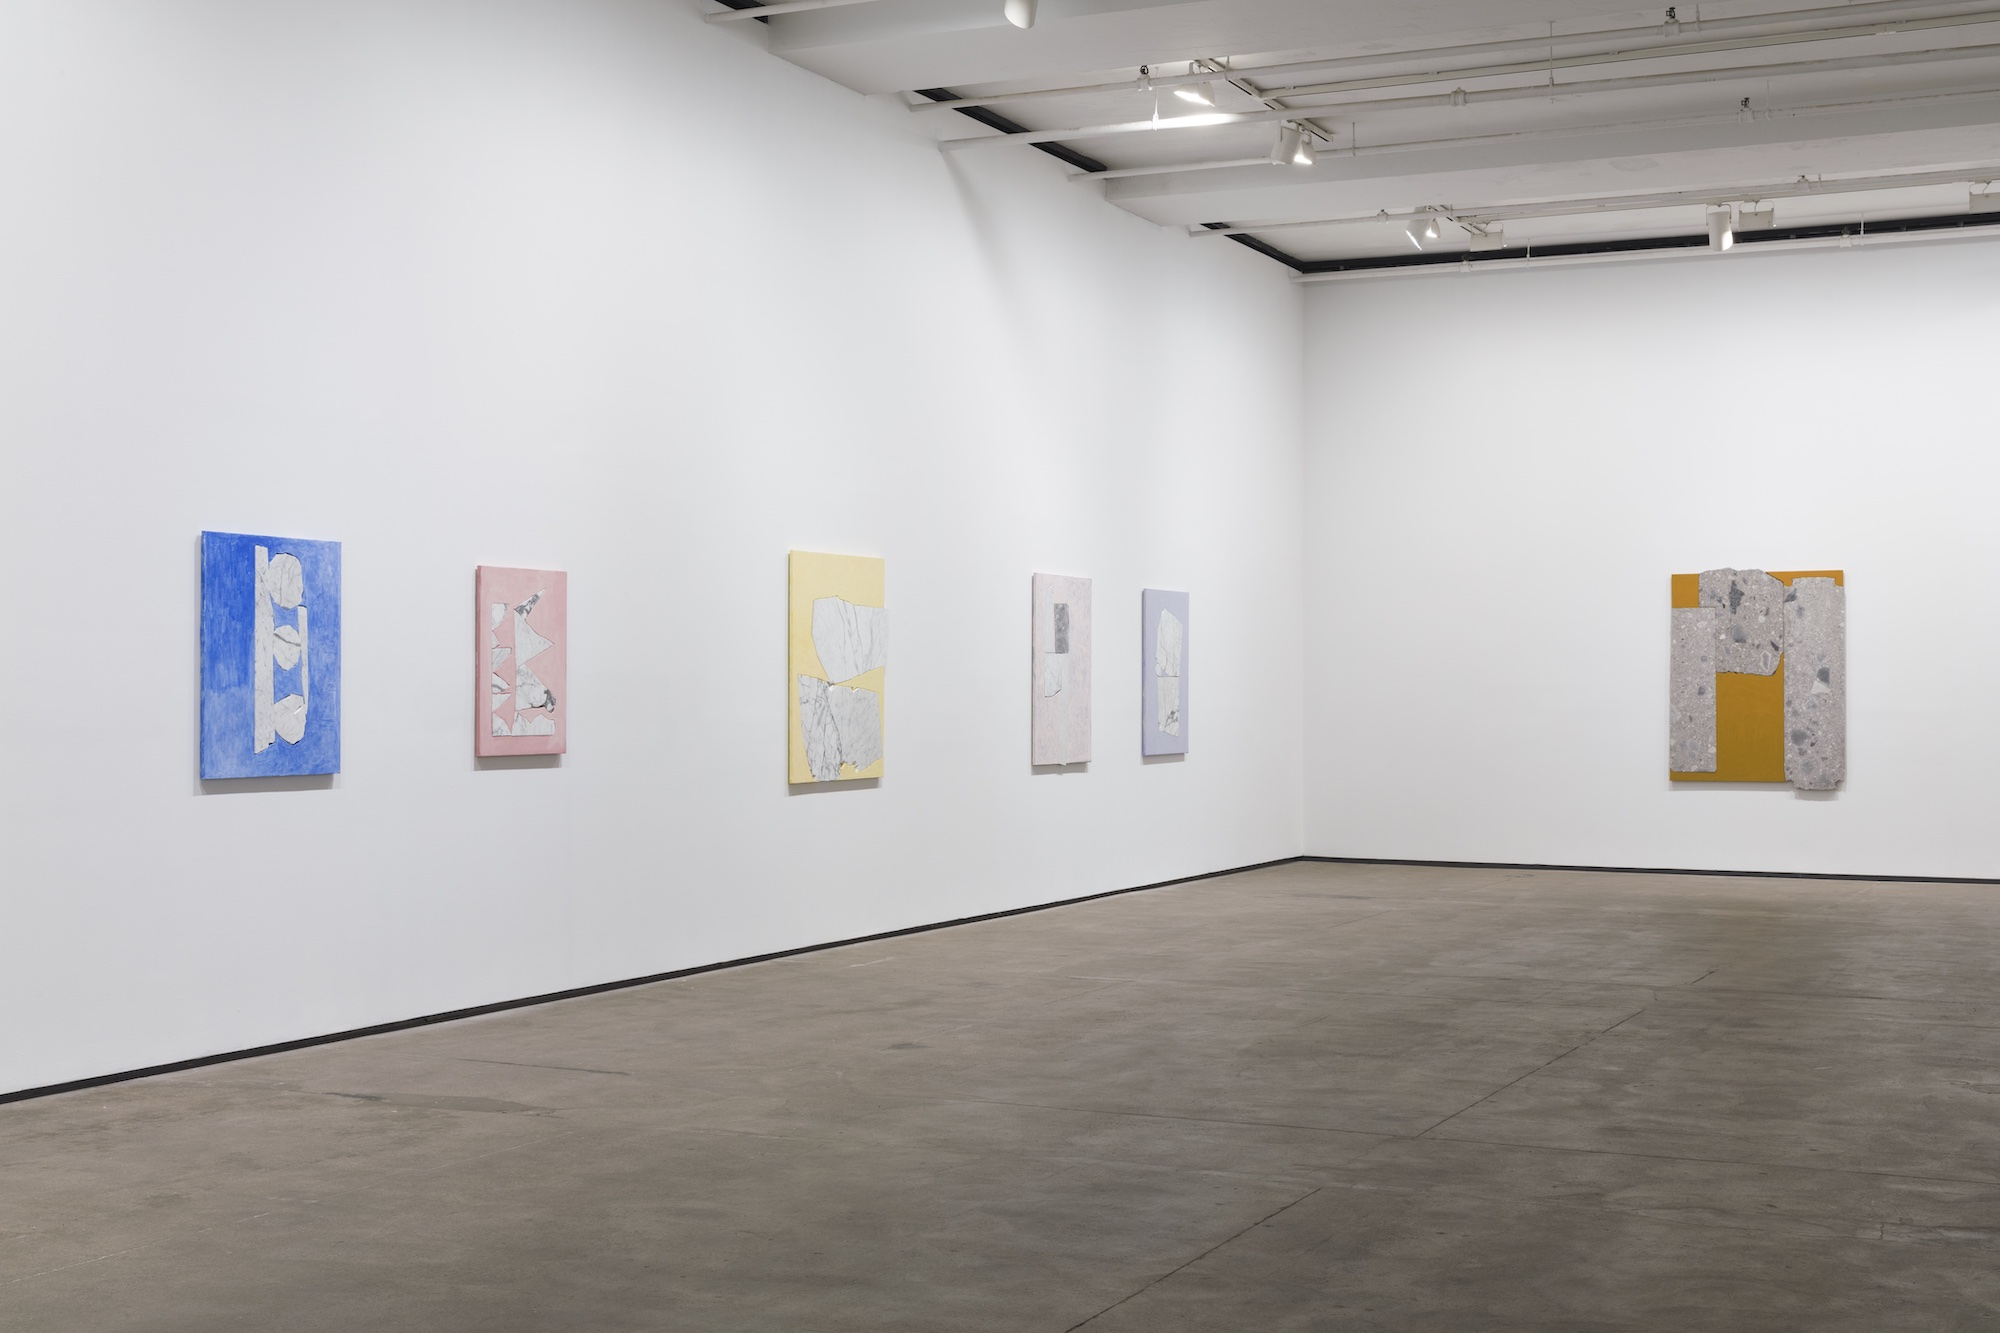 Installation view of Sam Moyer:Tone at Sean Kelly, New York March 12 – April 24, 2021 Photography: JSP Art Photography Courtesy: Sean Kelly, New York